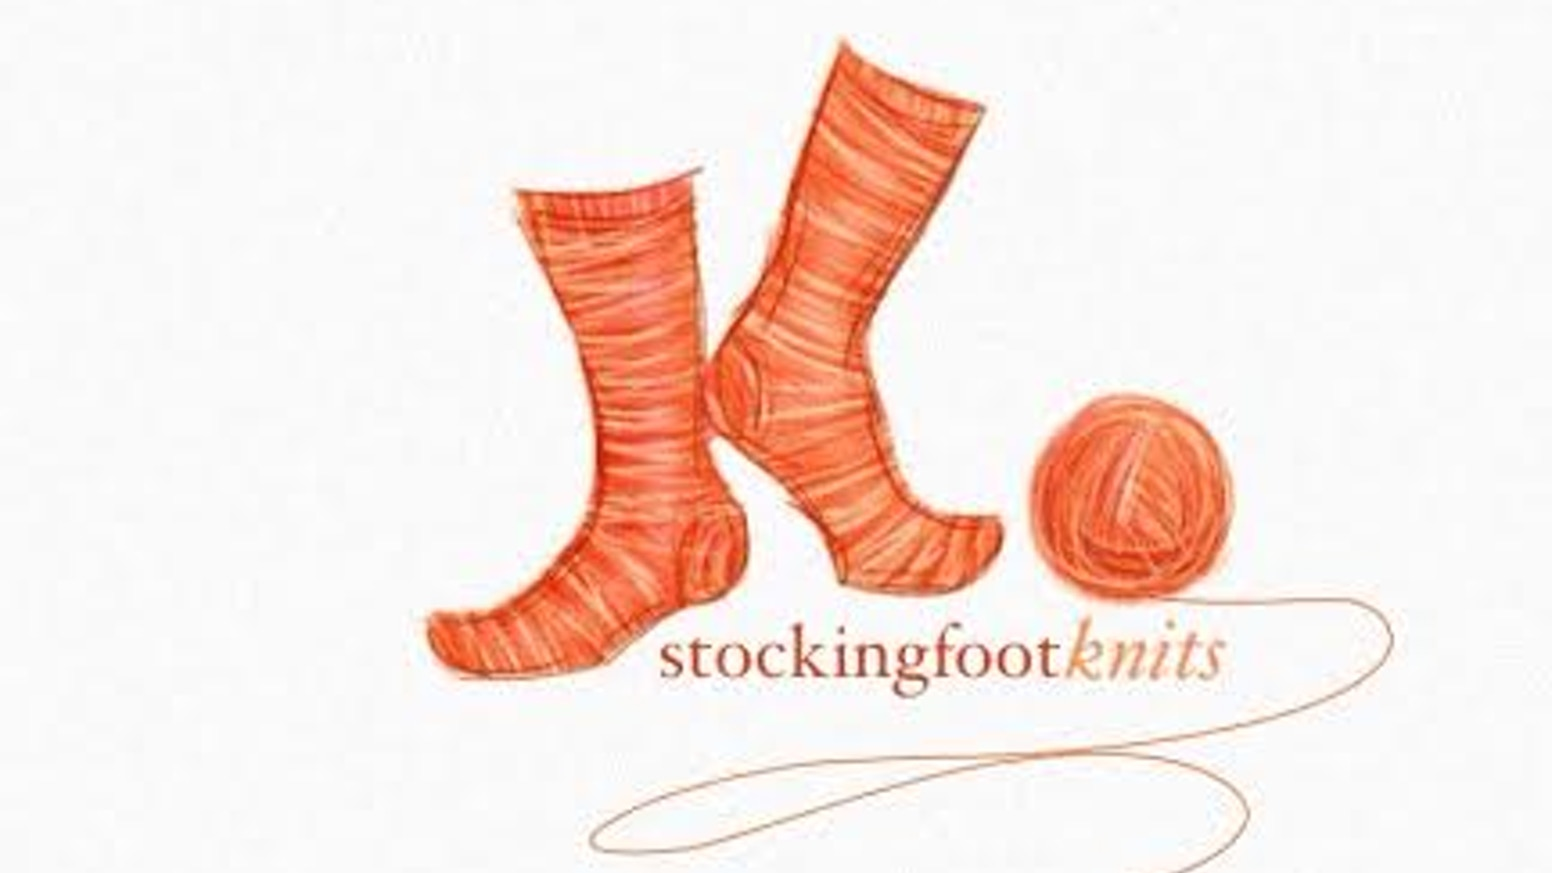 Stockingfoot Knits By Denise Frame Harlan Stockingfoot Notes For